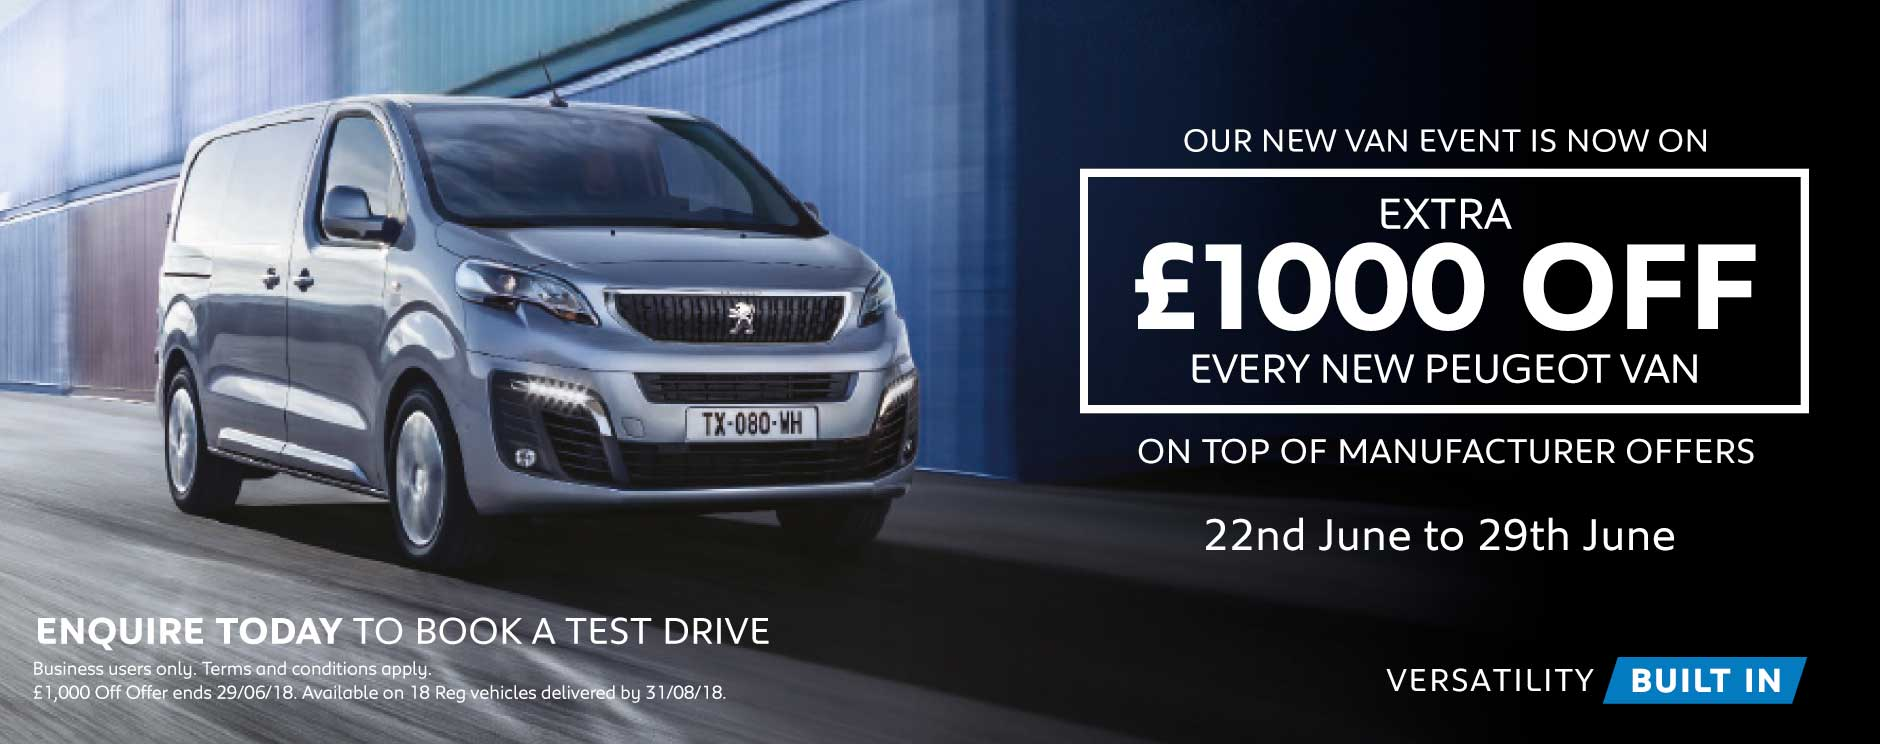 �1000 Off New Vans June 2018 - BSM Peugeot